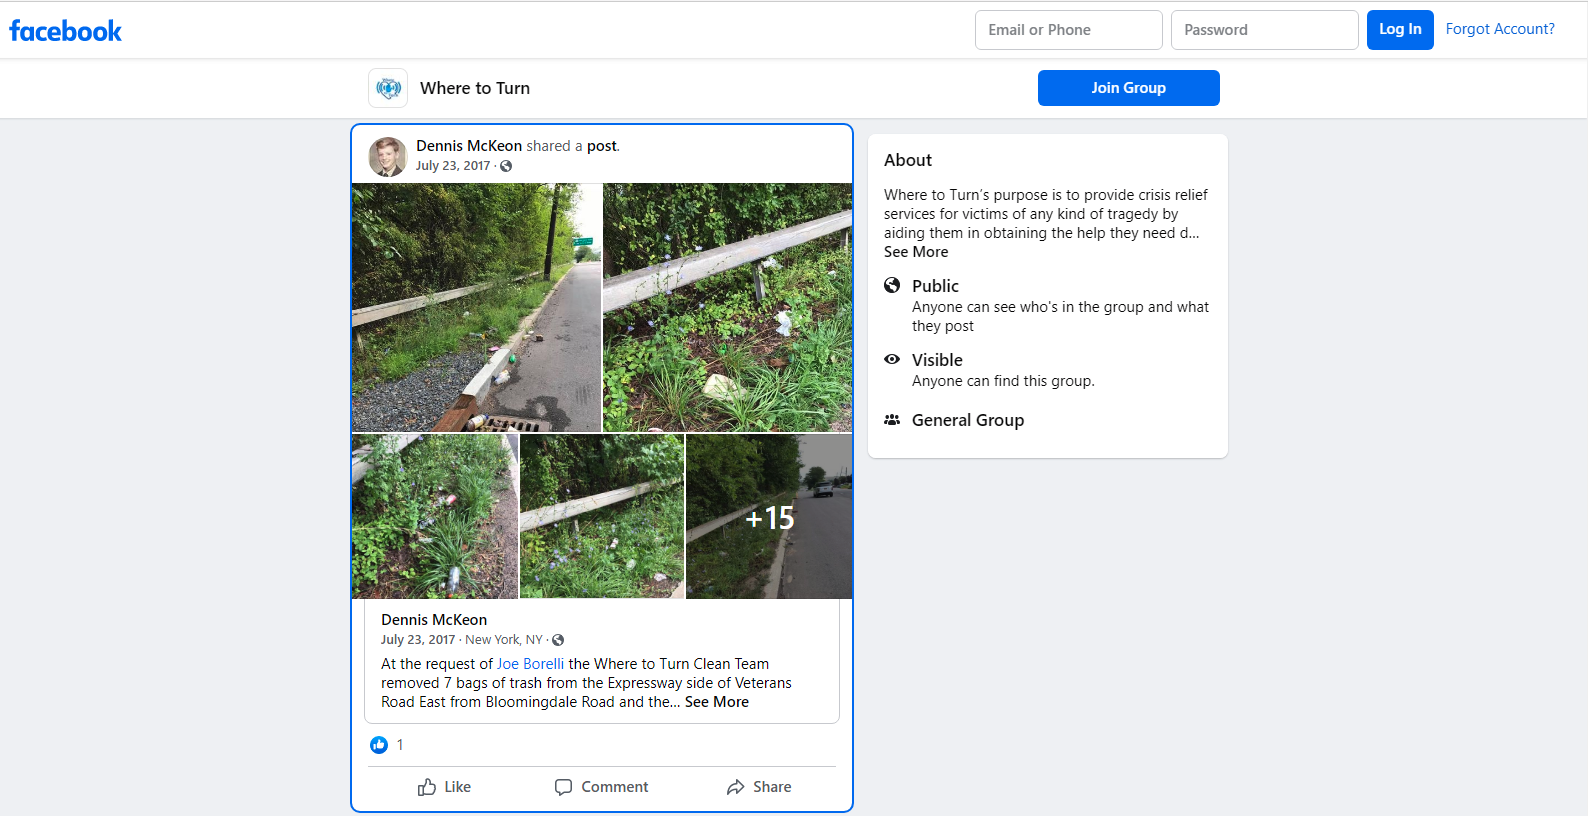 Where to turn facebook group page screenshot